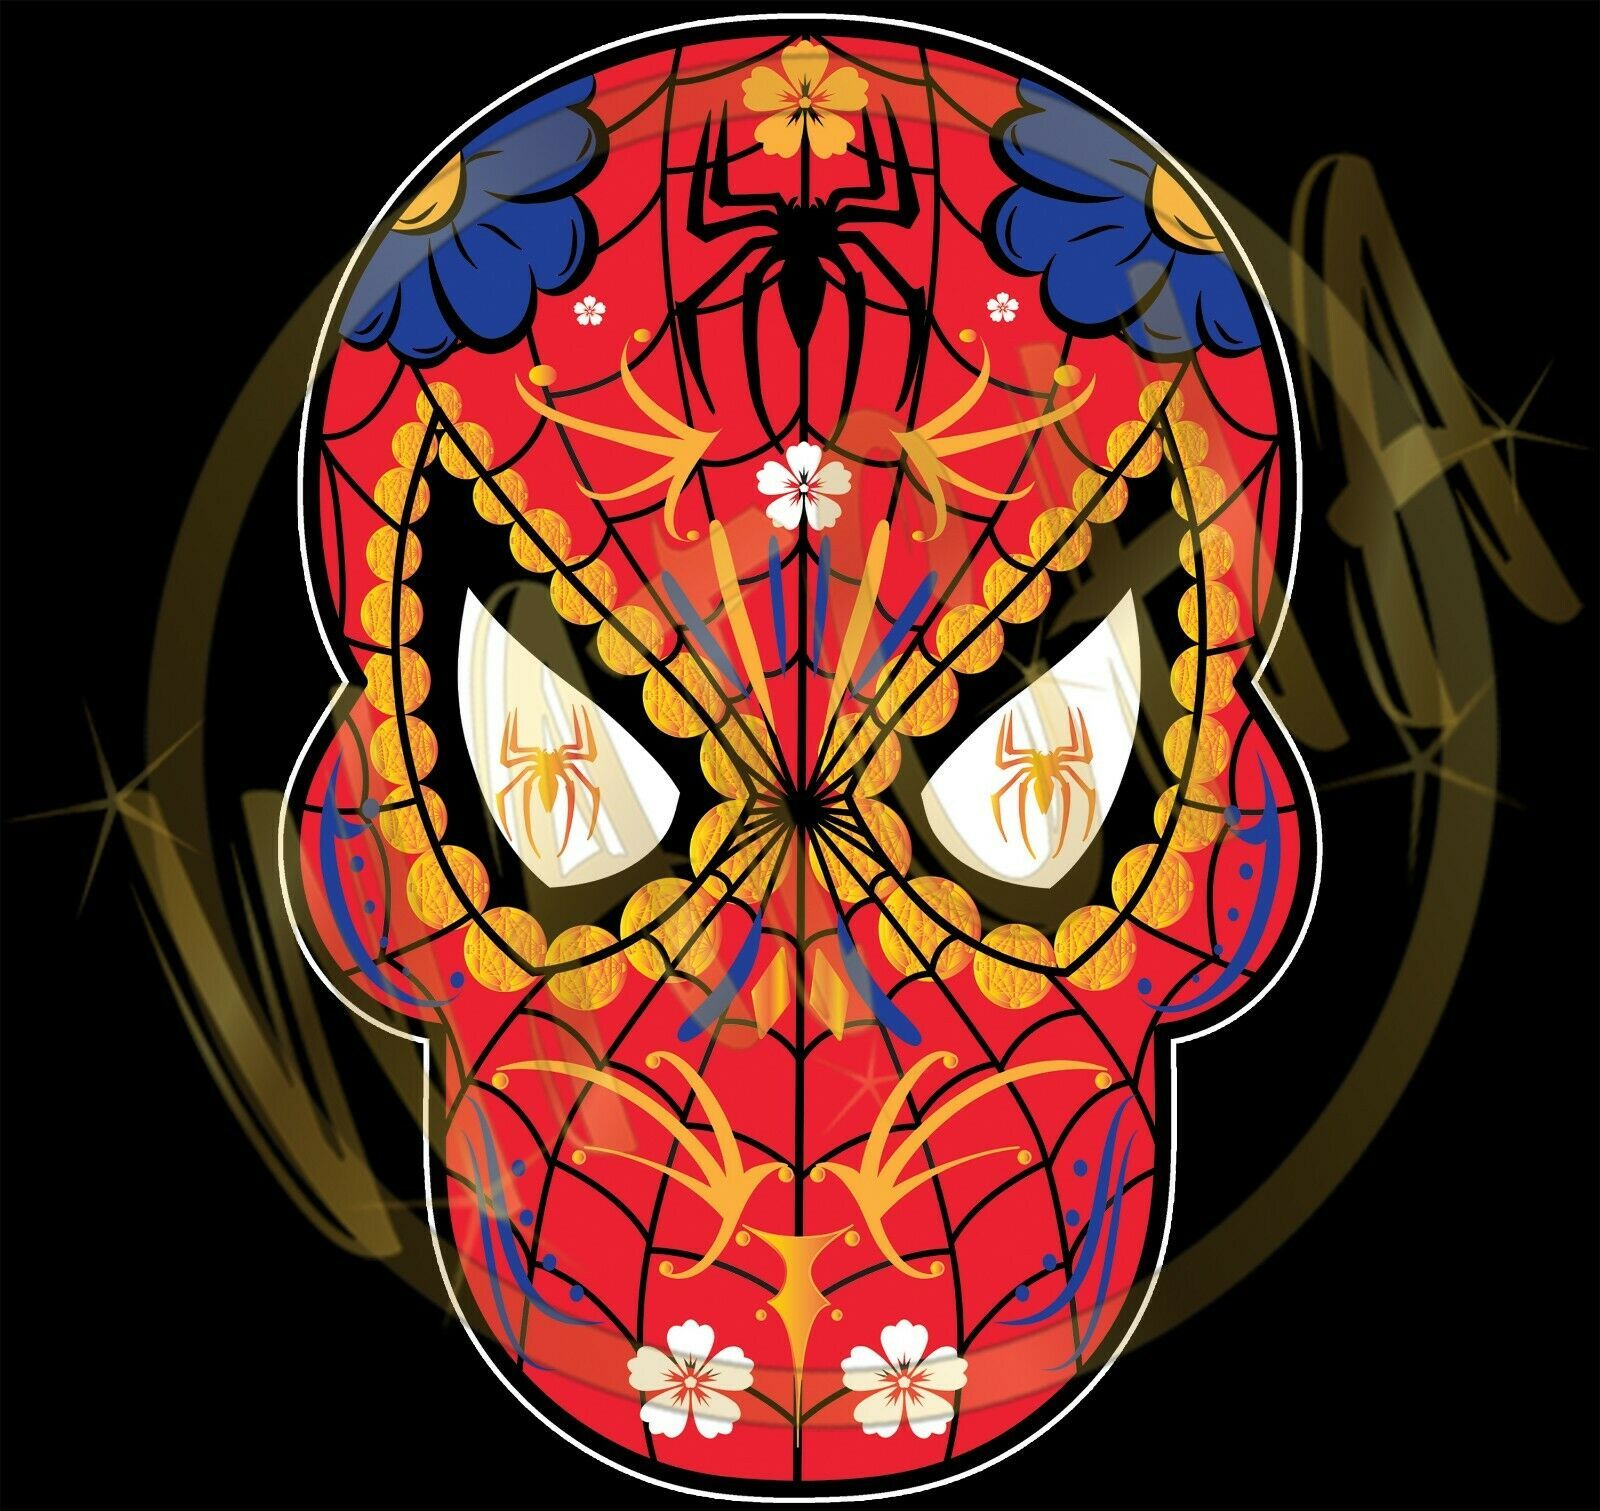 Primary image for Spider Man Dia De Los Muertos Sugar Skull W/Gold Spider Image Men's T-Shirts